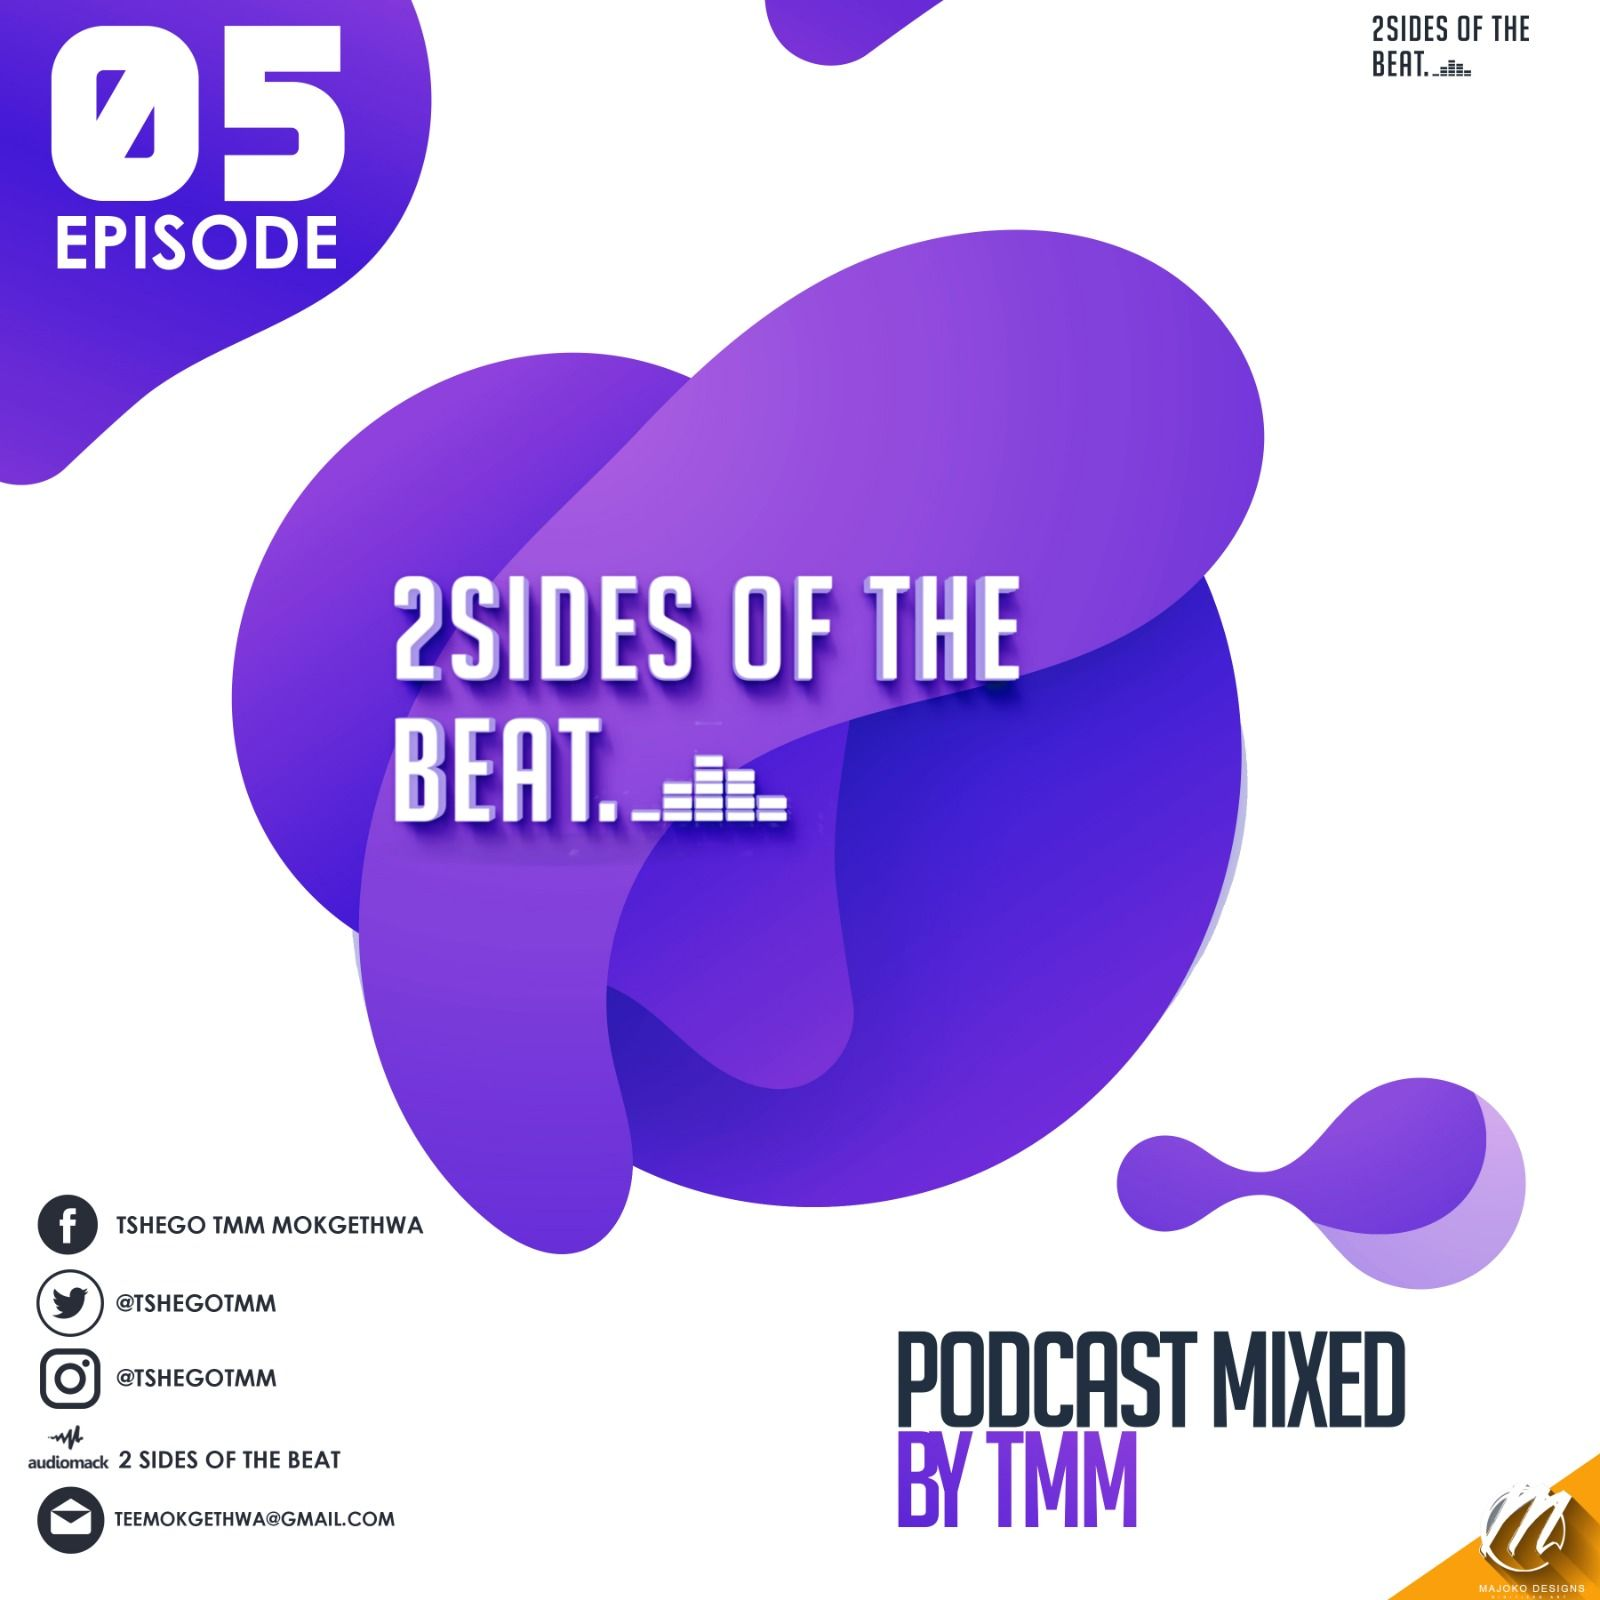 2 Sides Of The Beat Episode #05 Mixed By TMM by TMM from 2 Side Of